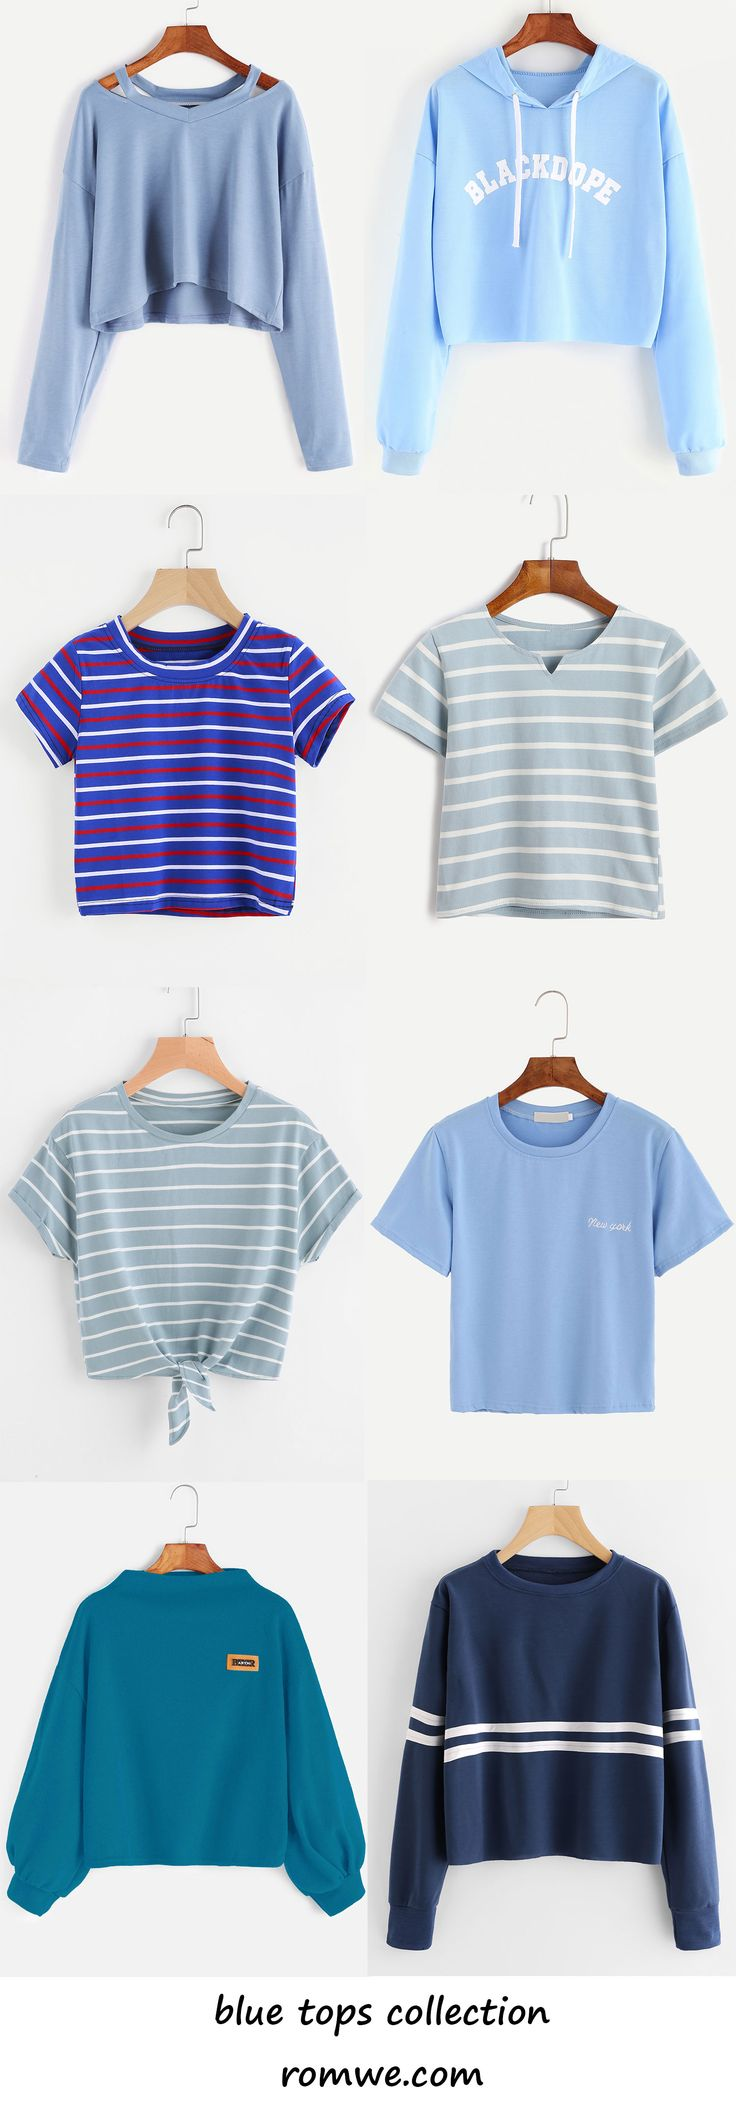 buy one get one - blue tees collection 2017